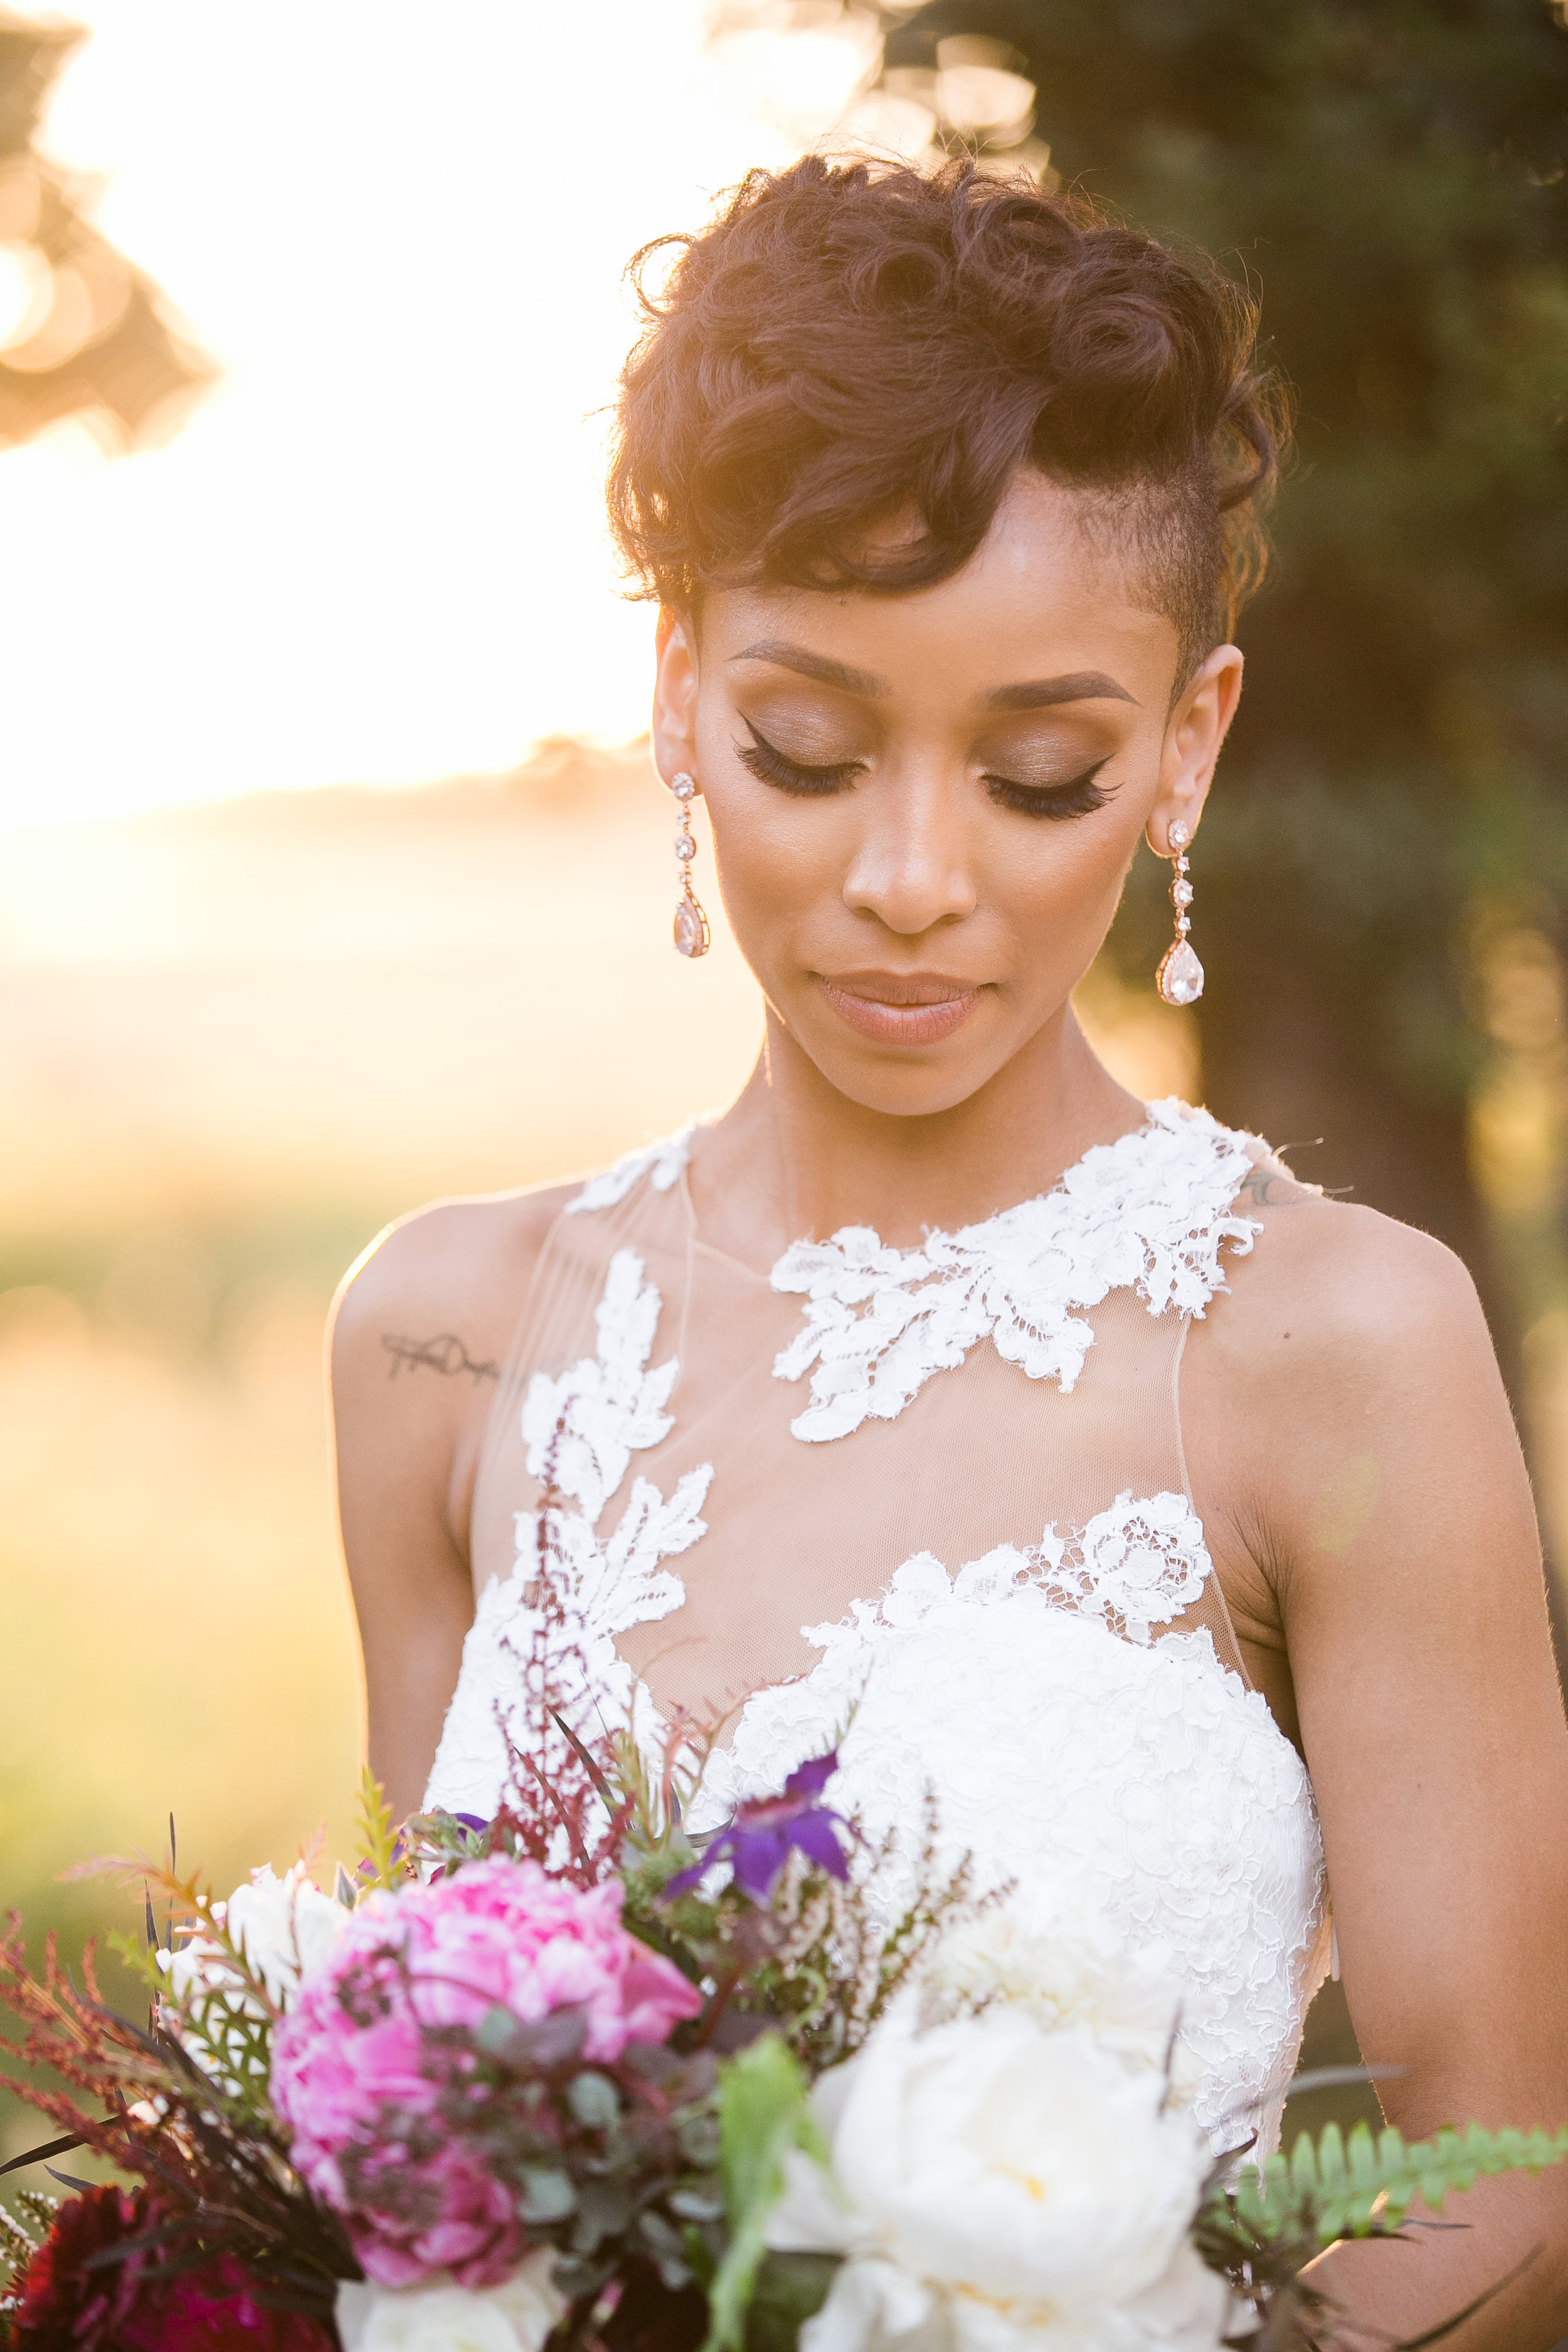 We specialize in all things bridal! Click here to view bridal hair and makeup prices!